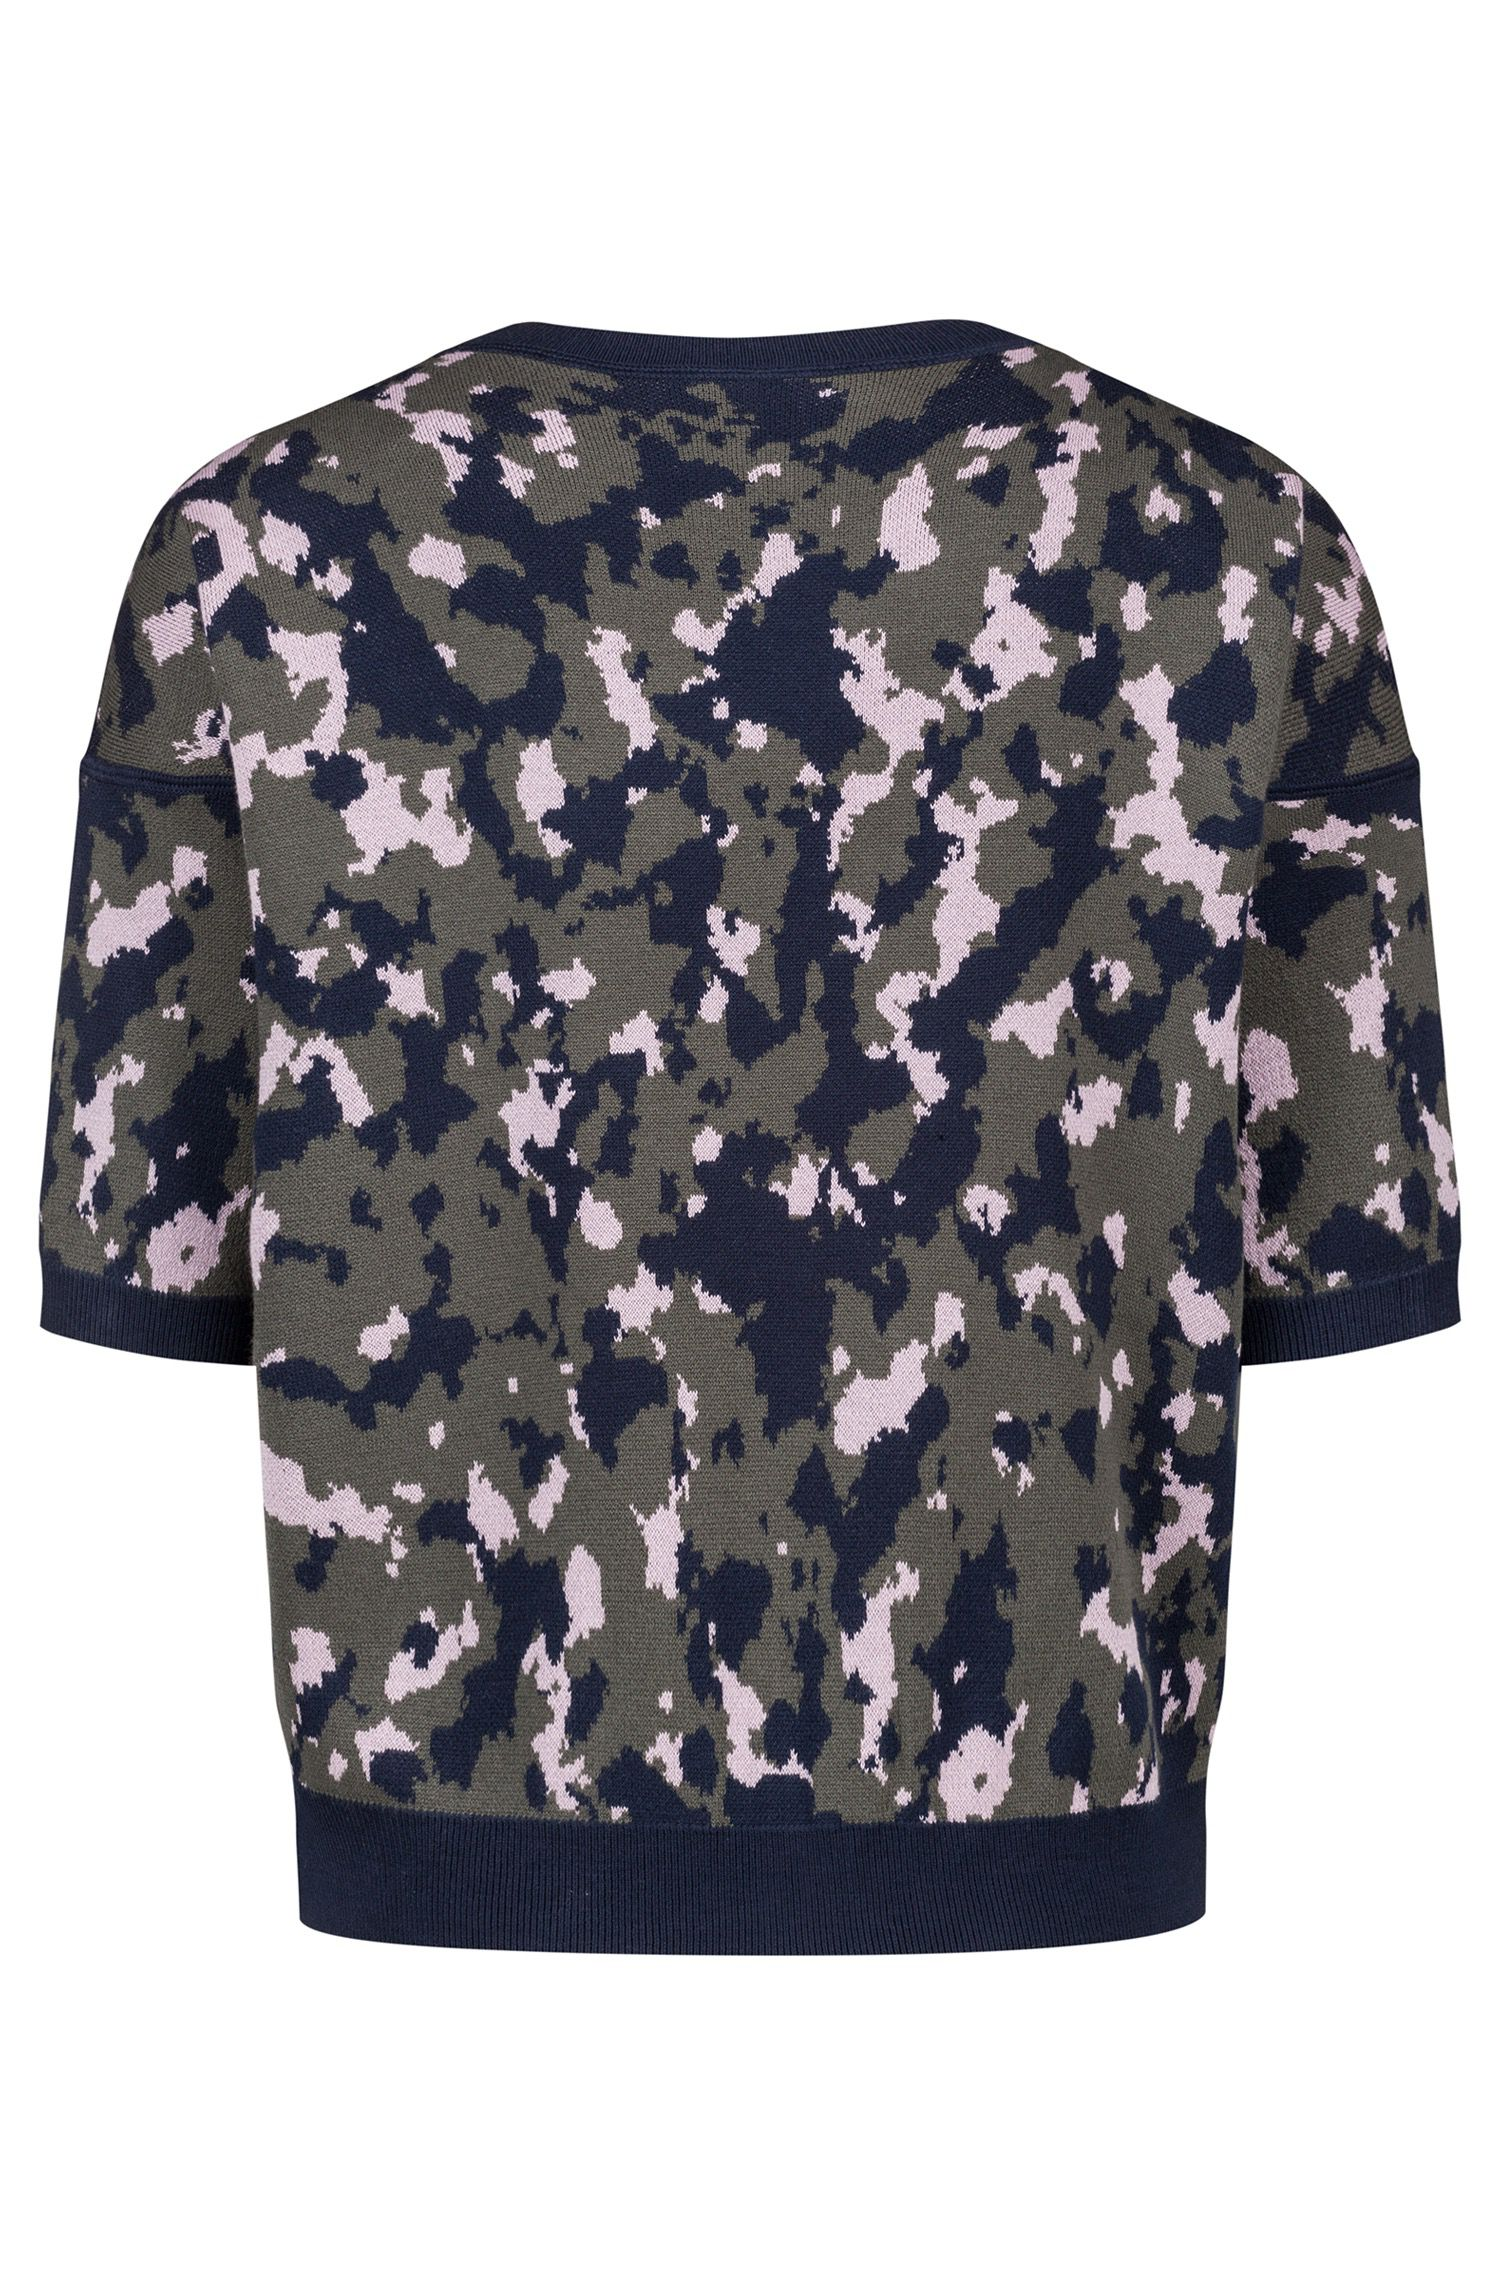 Cotton-blend camouflage sweater with bird appliqué, Patterned